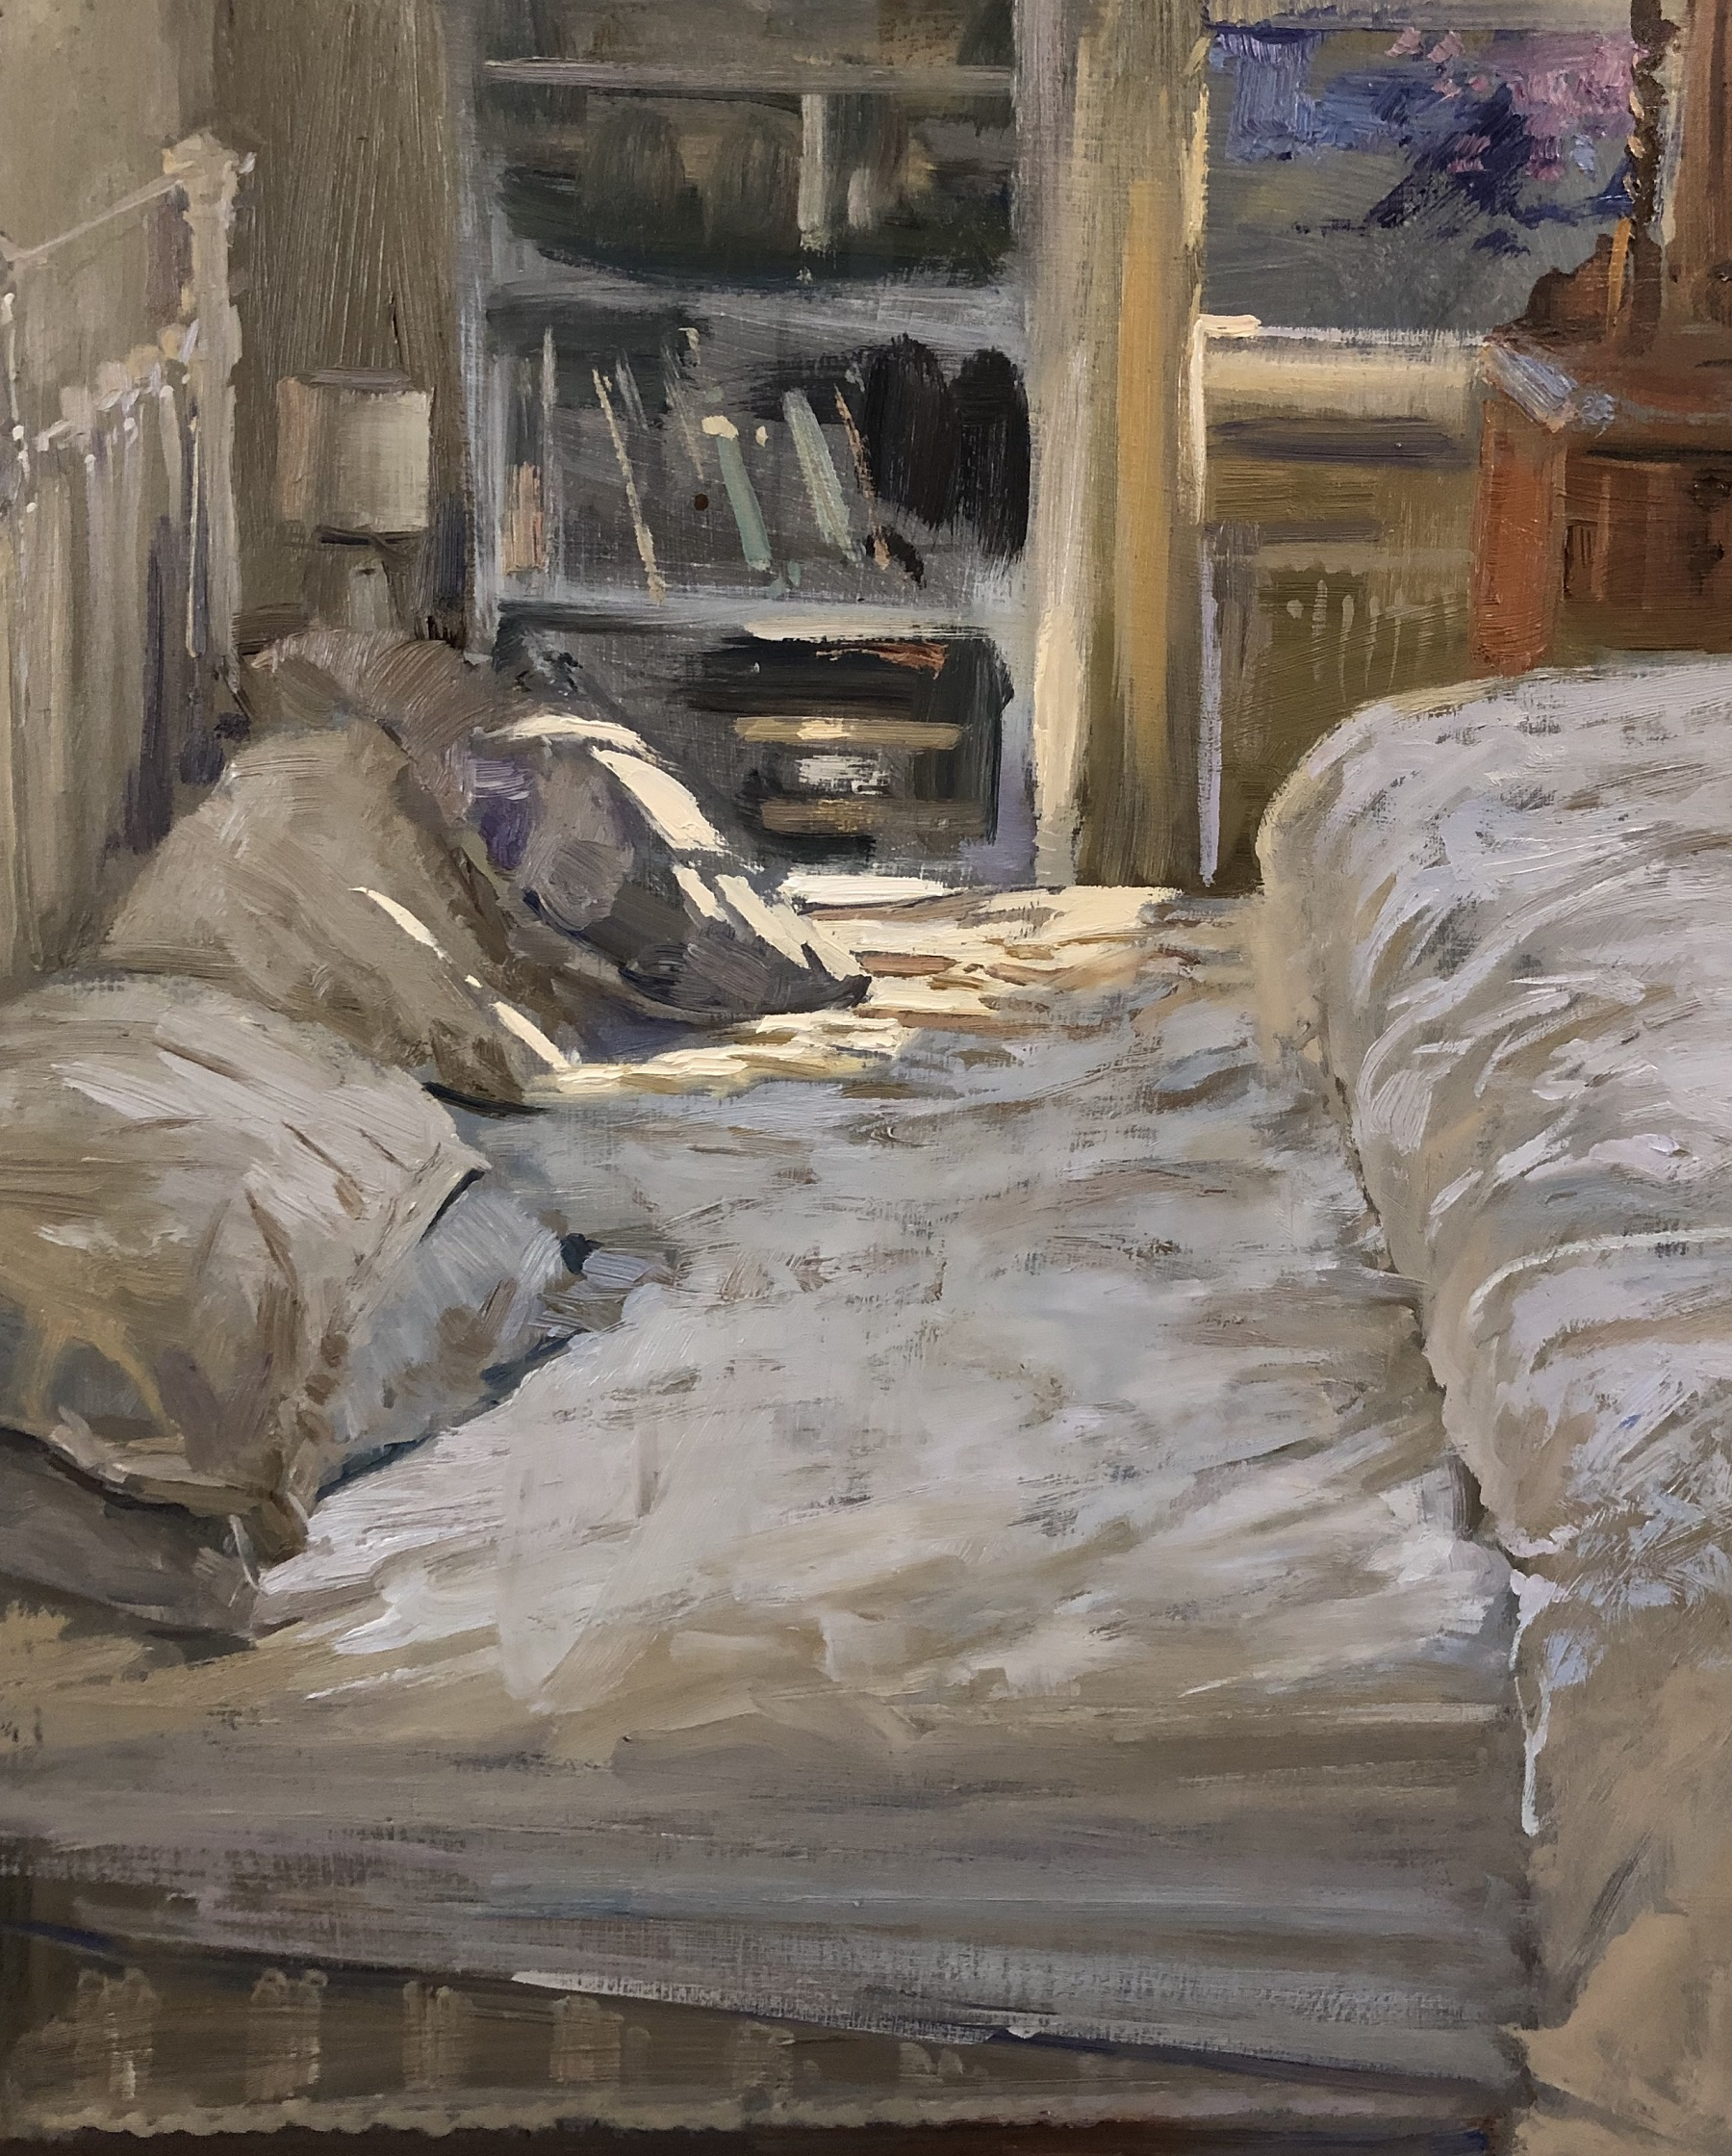 Bed sheets, 2020 Peter Brown oil on board, 12 x 10 in